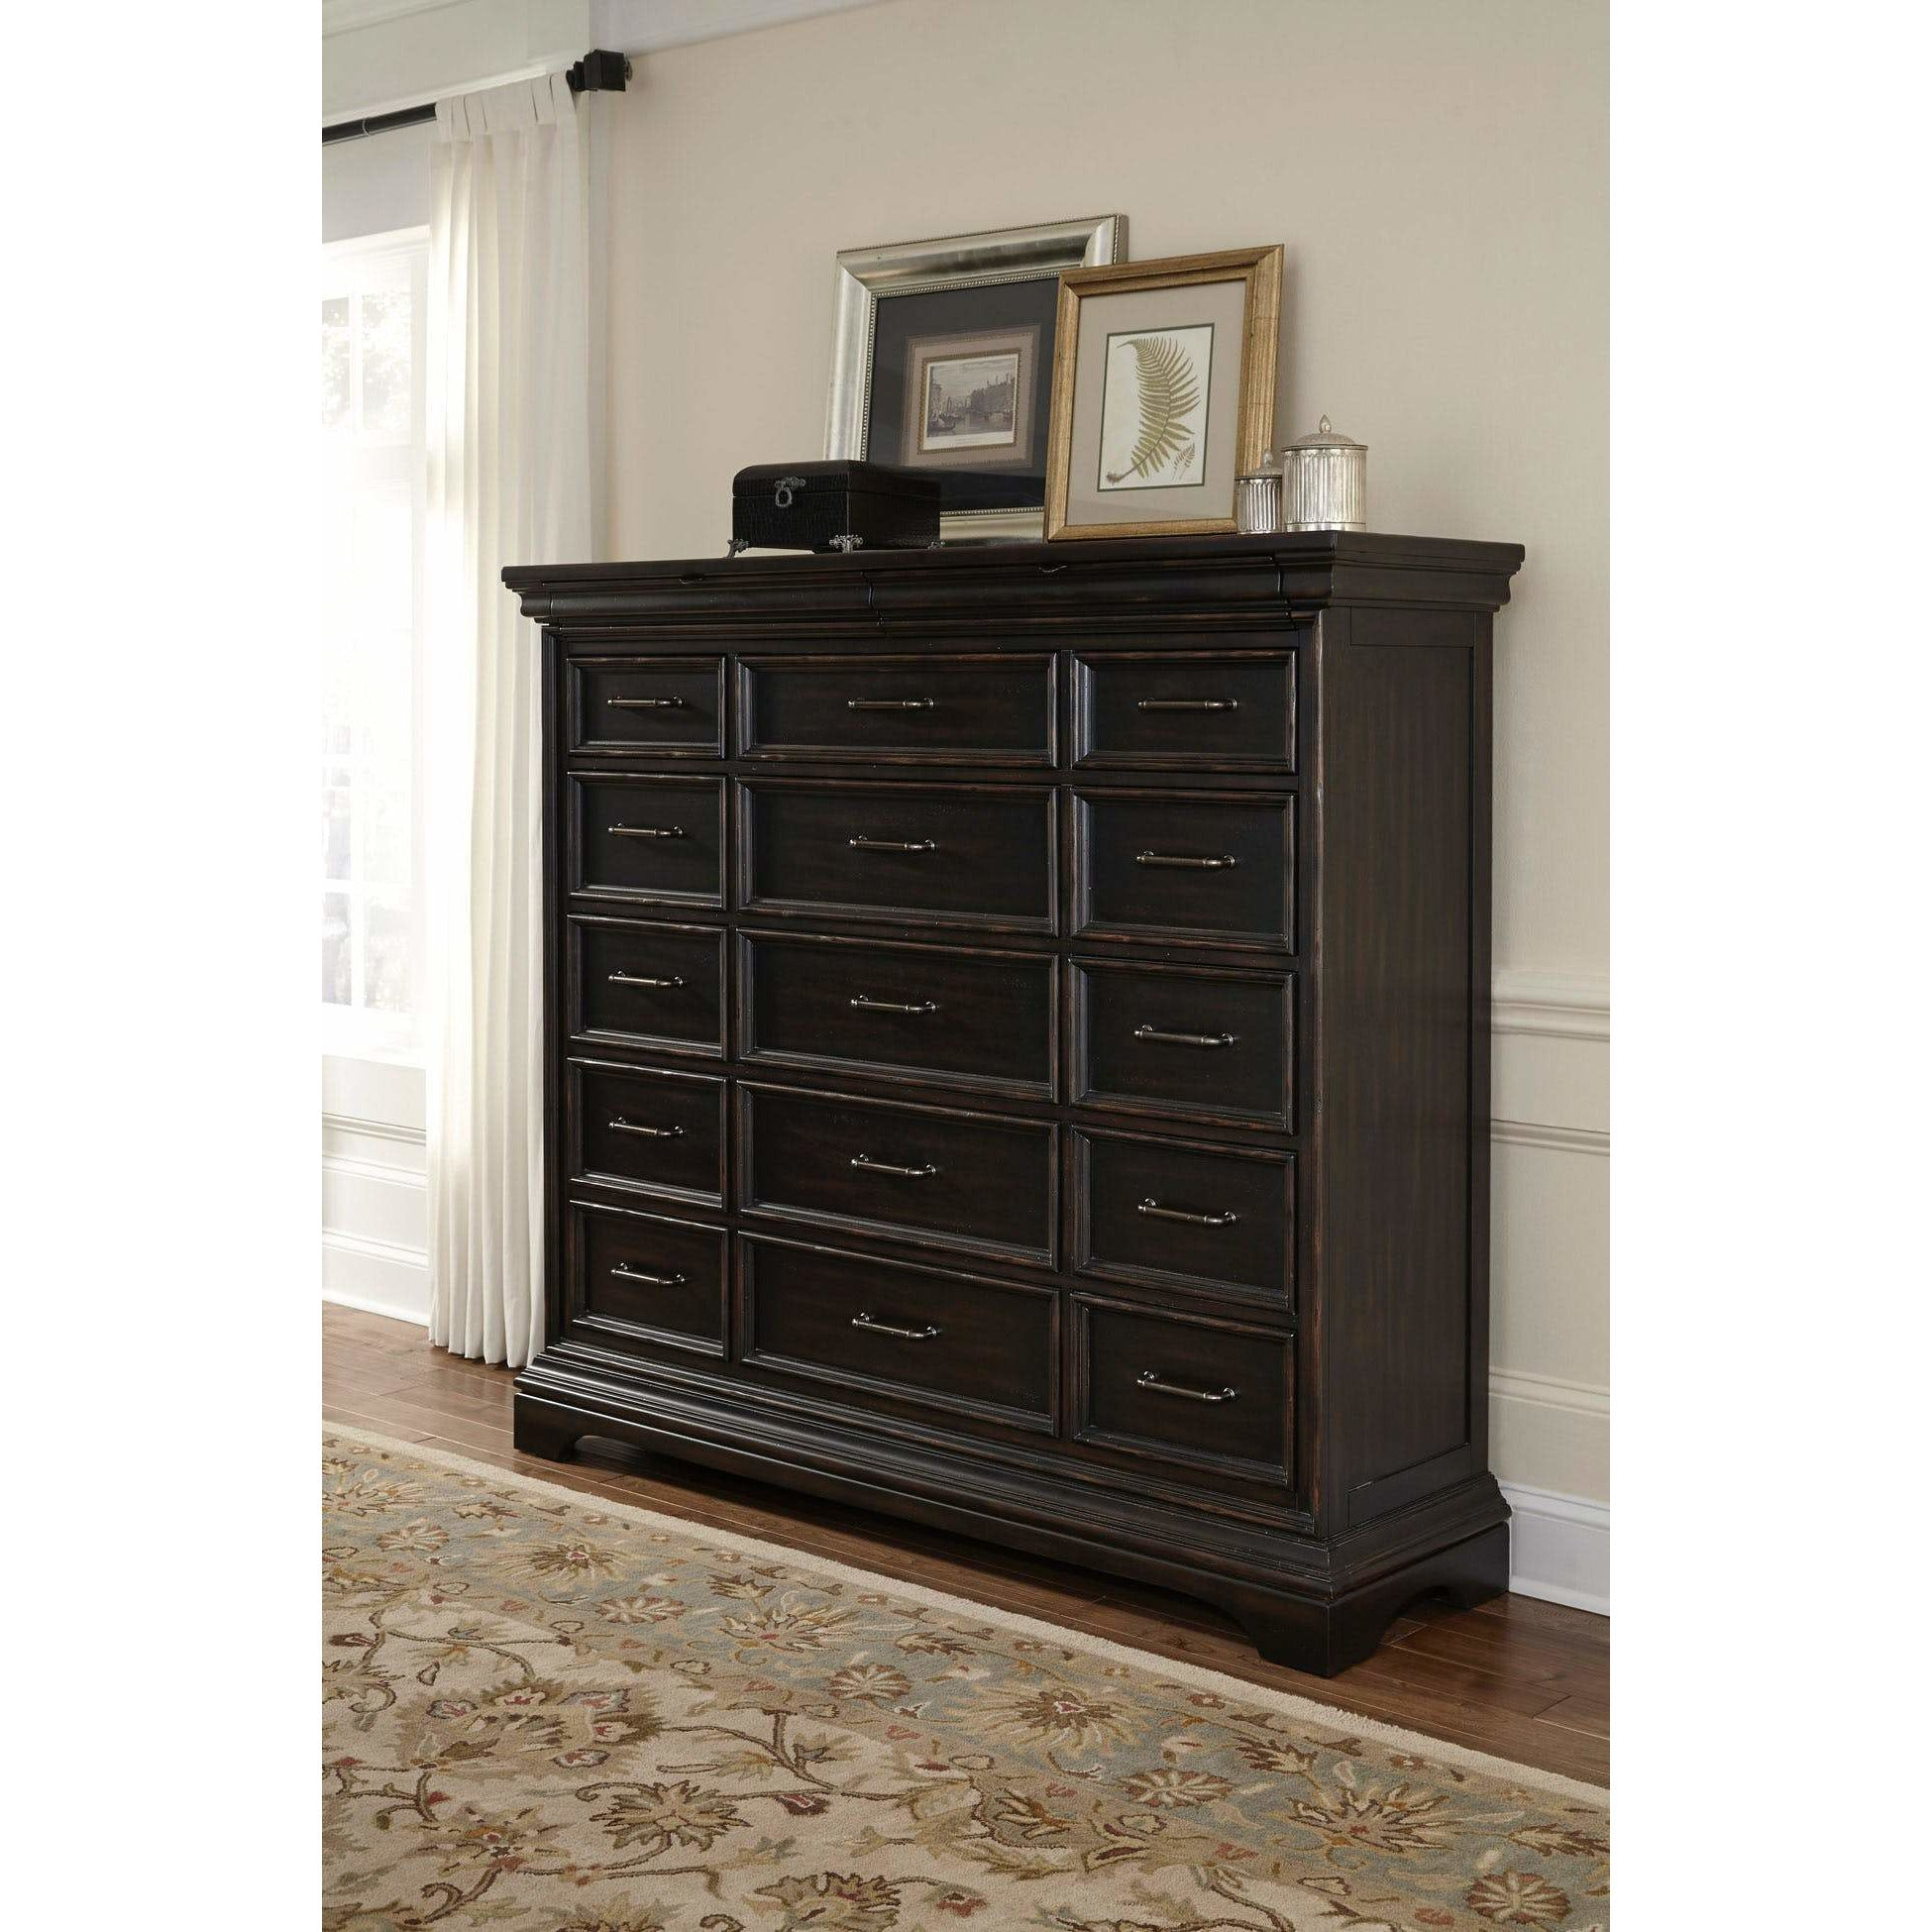 Caldwell 17-Drawer Master Chest